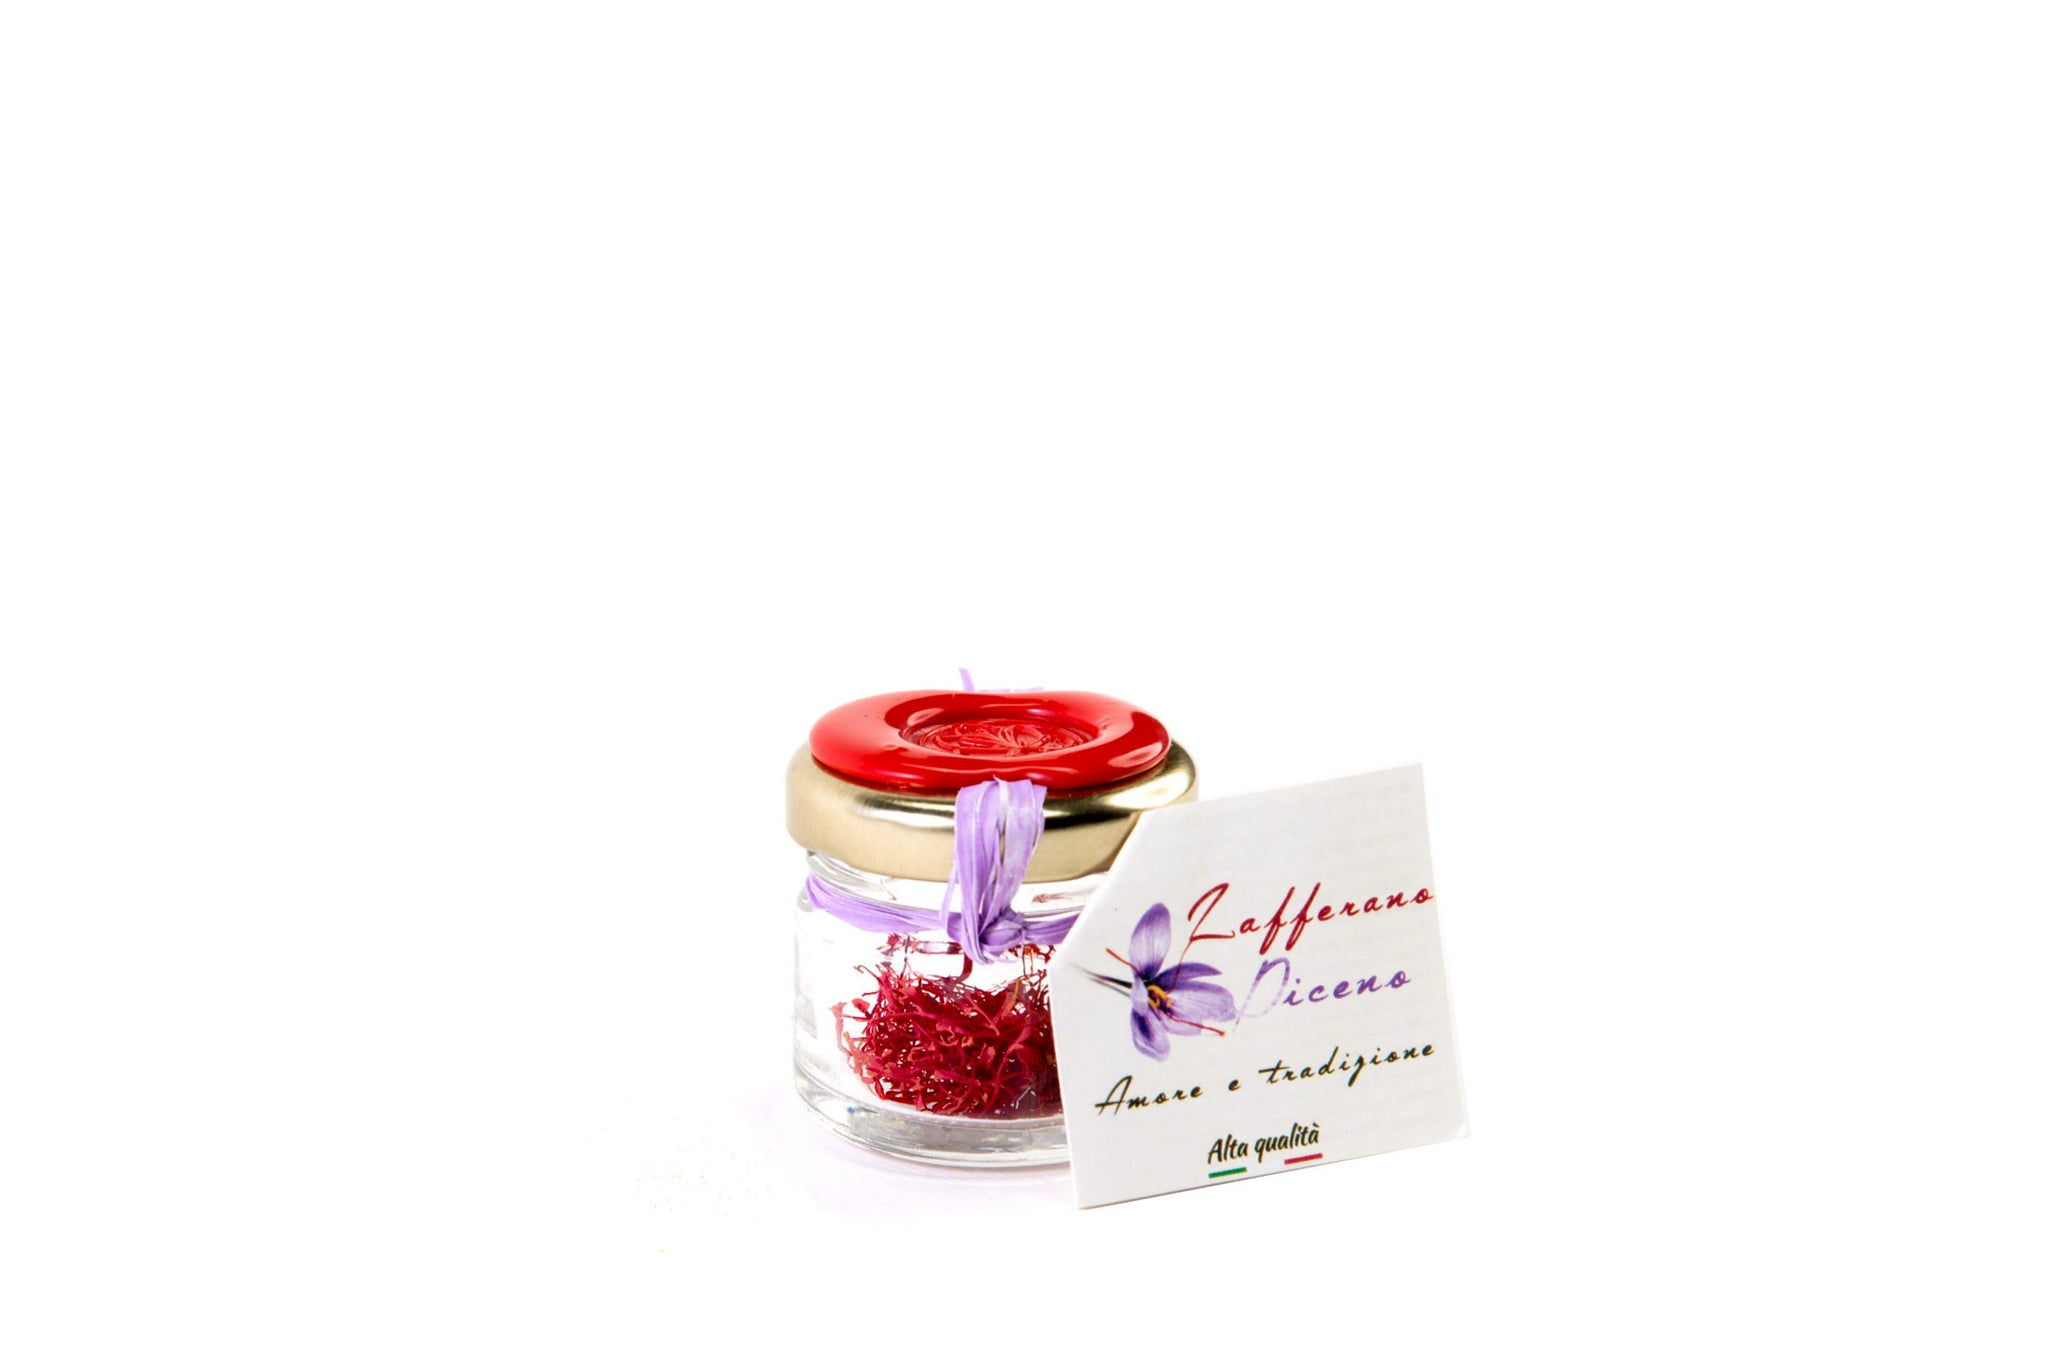 Zafferano Piceno Italian Saffron 0.3g from Marche | Shop the Red Beetle